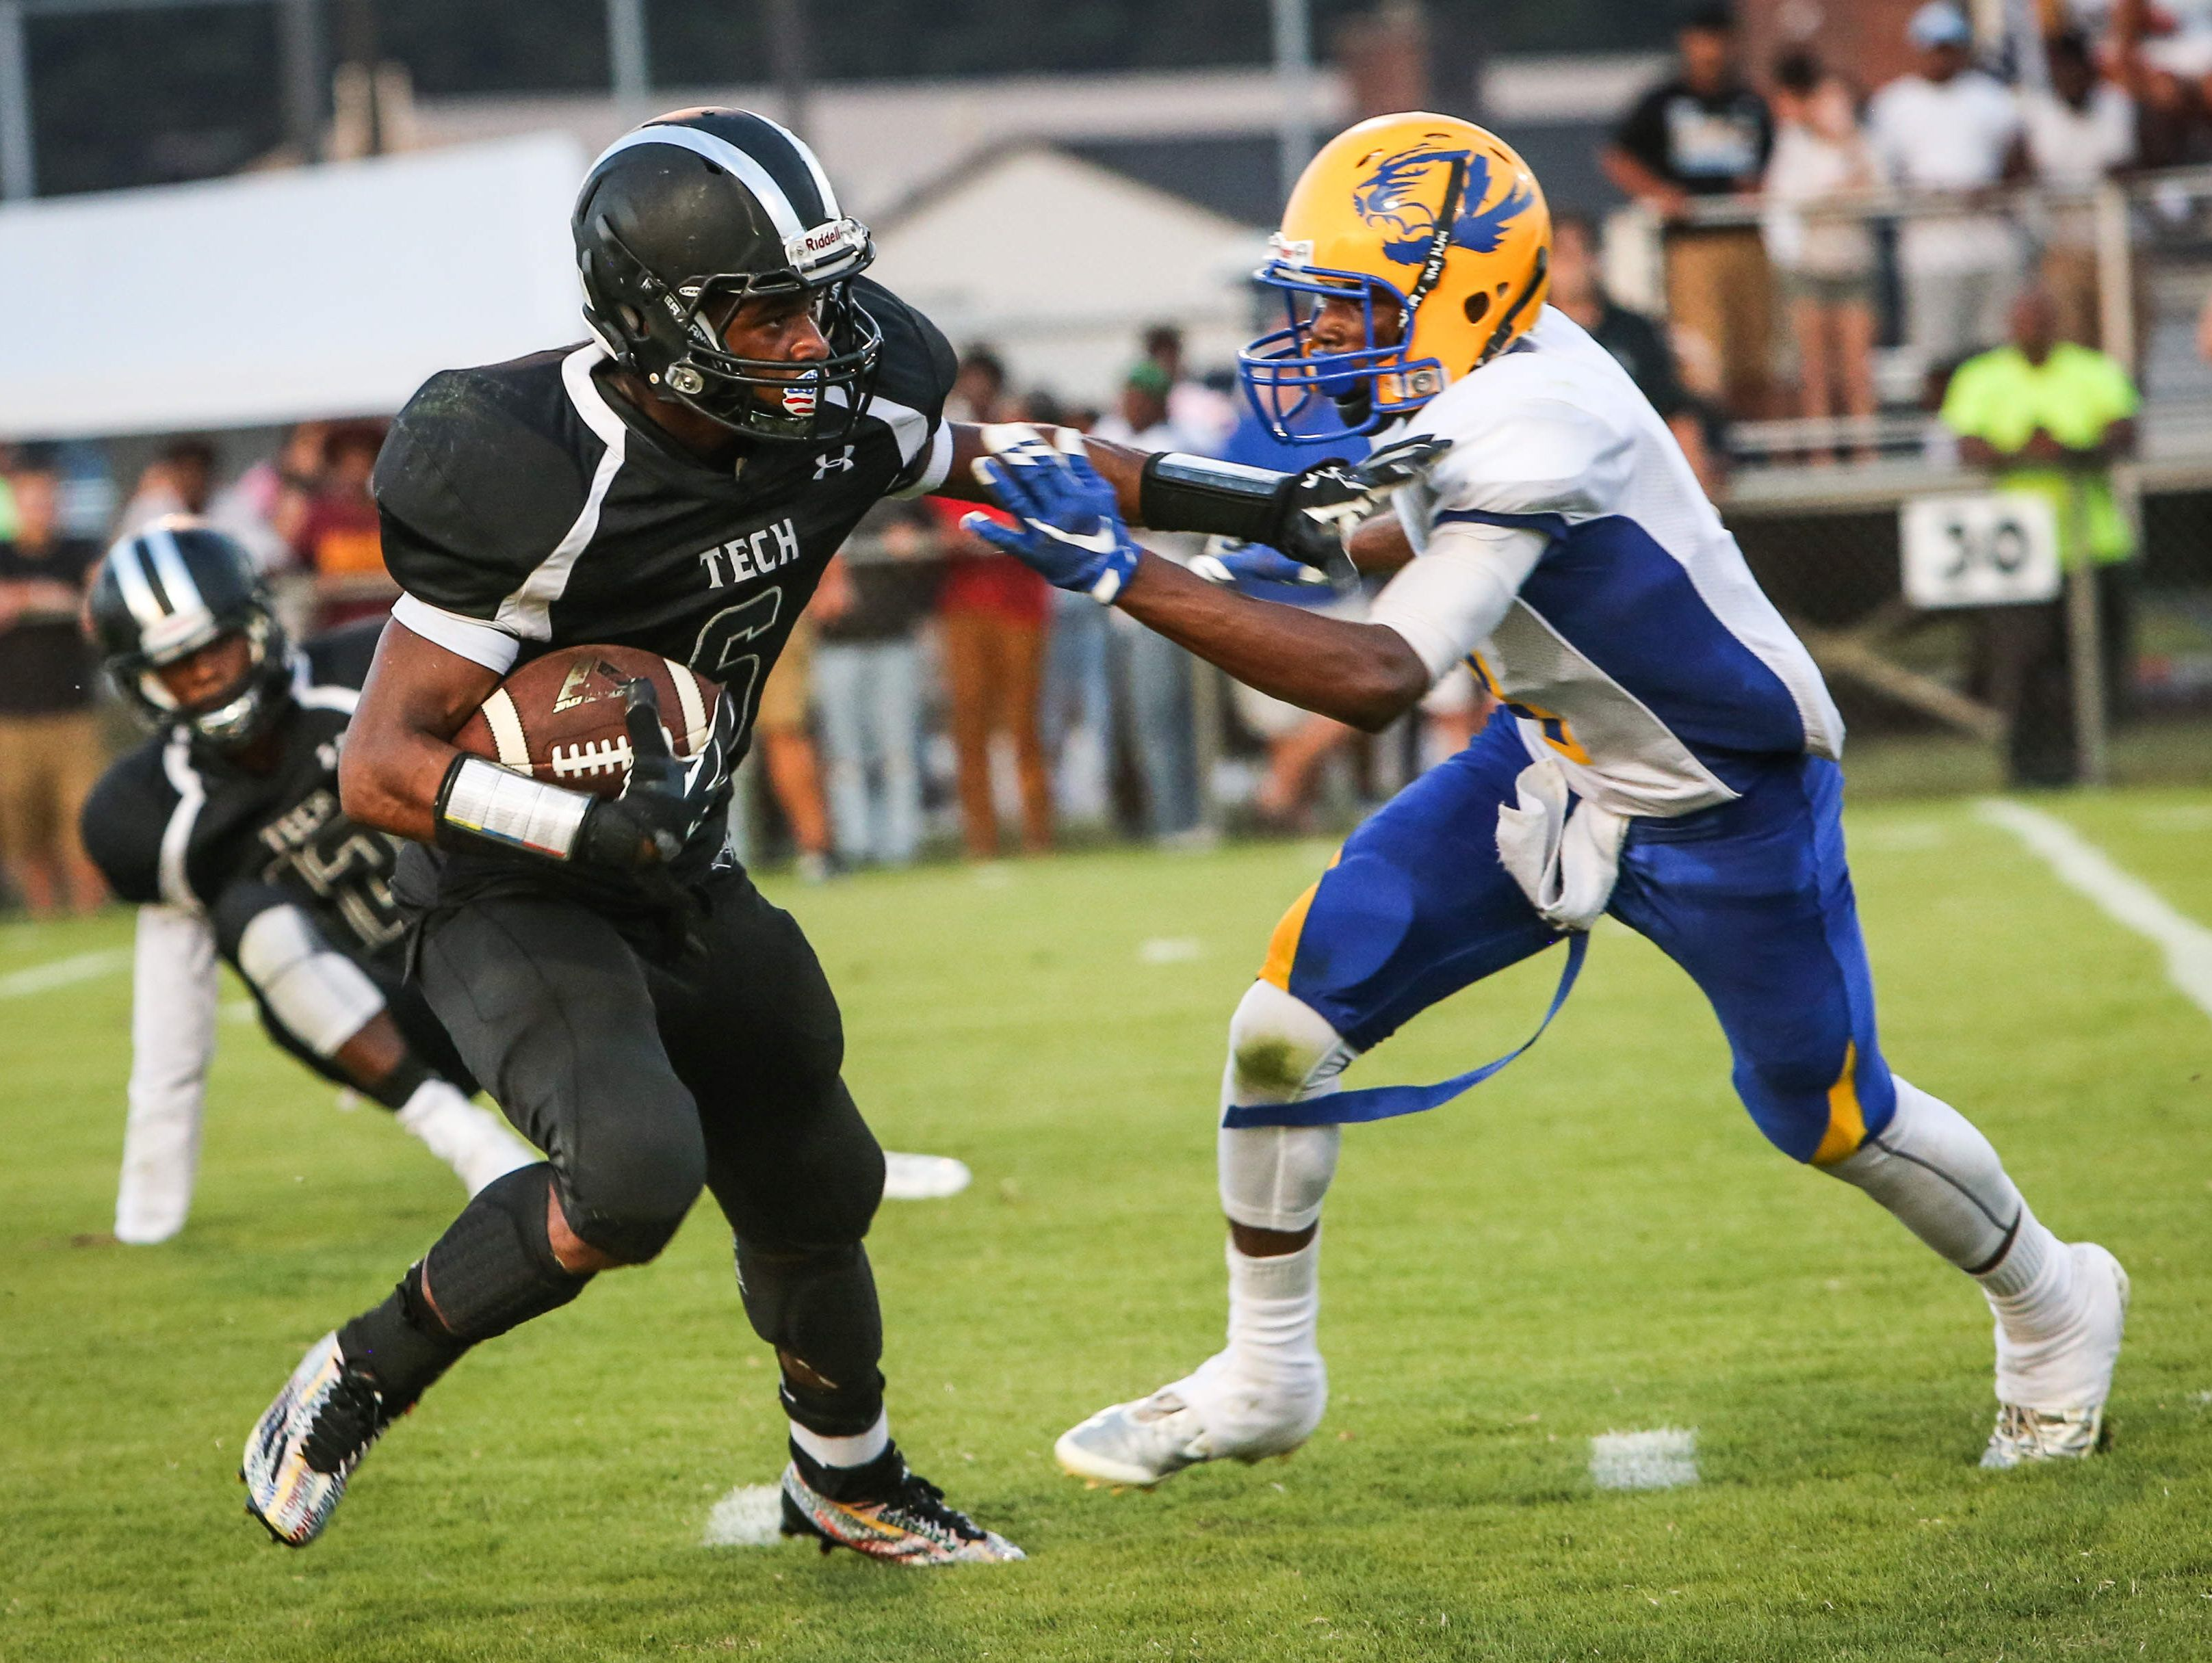 Sussex Tech running back Isaiah Brown, shown here against A.I. du Pont, could be a major weapon for the Ravens against Salesianum on Thursday. Both Brad Myers and Matt Kalin are picking the Sals to win at Baynard Stadium.